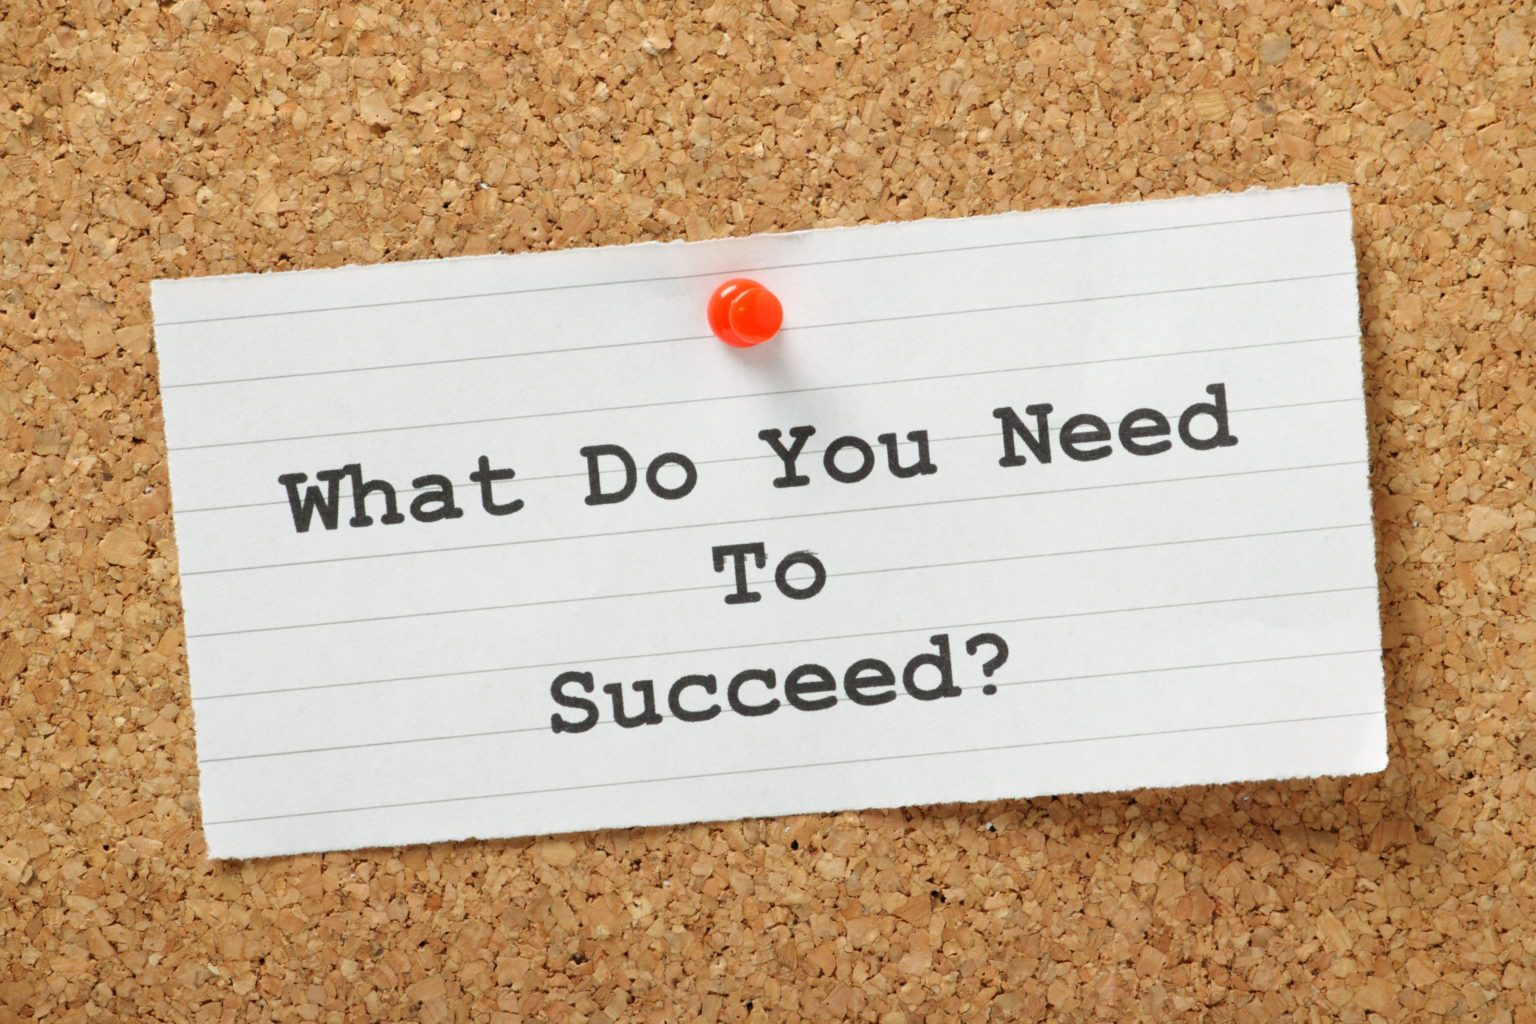 Resource Roundup: 5 Resources to Help Your Nonprofit Thrive